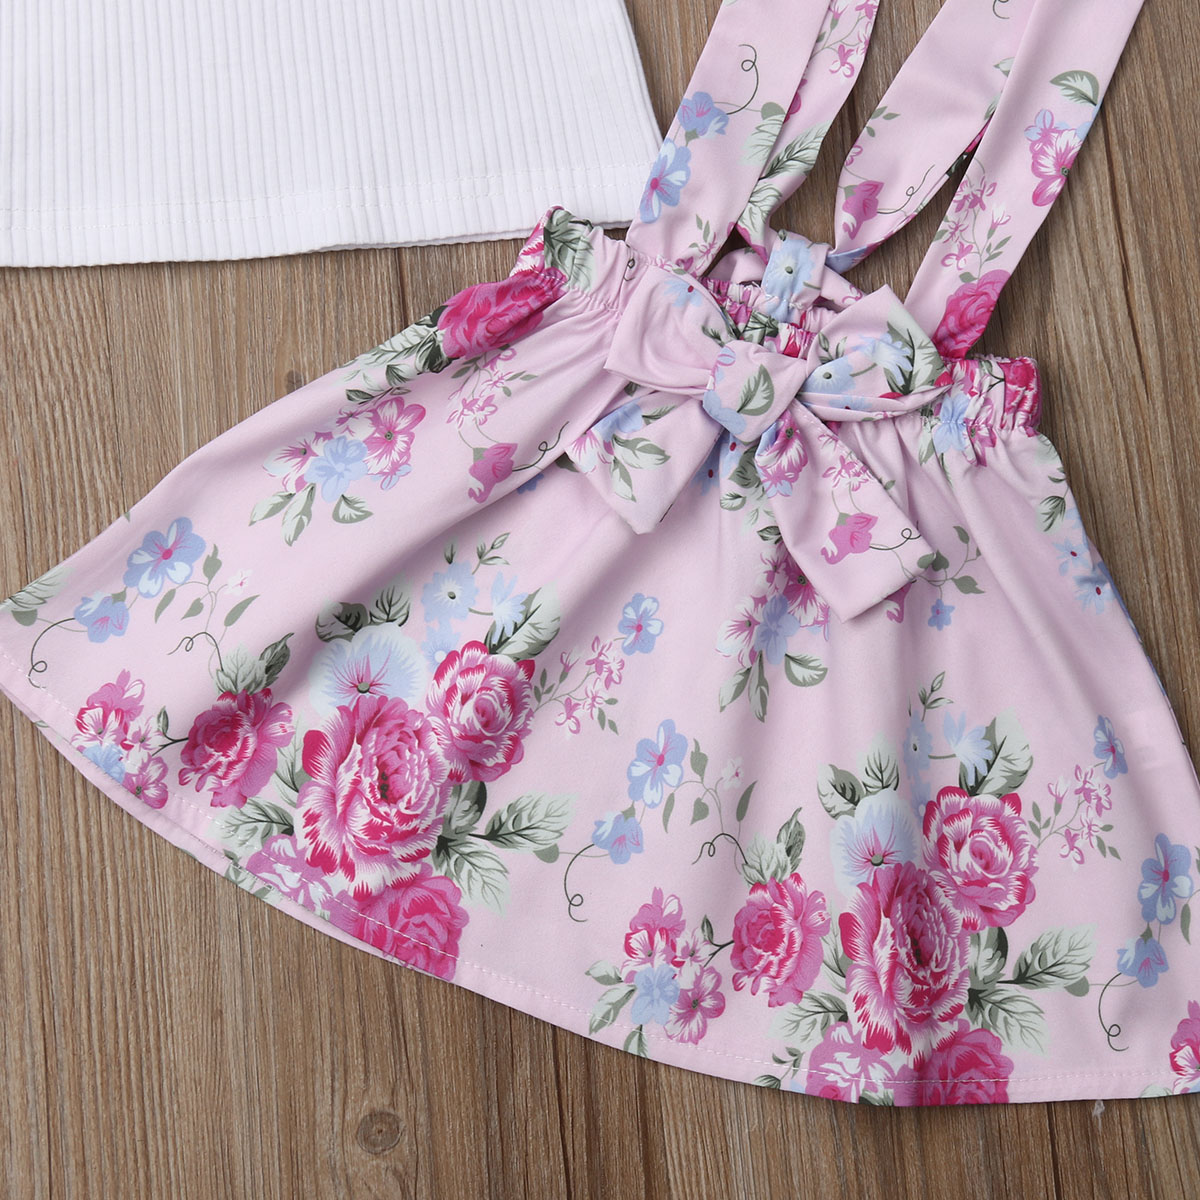 Toddler Kids Baby Girl Tops T-Shirt Flower Suspender Skirt 3PCS Outfits Clothes